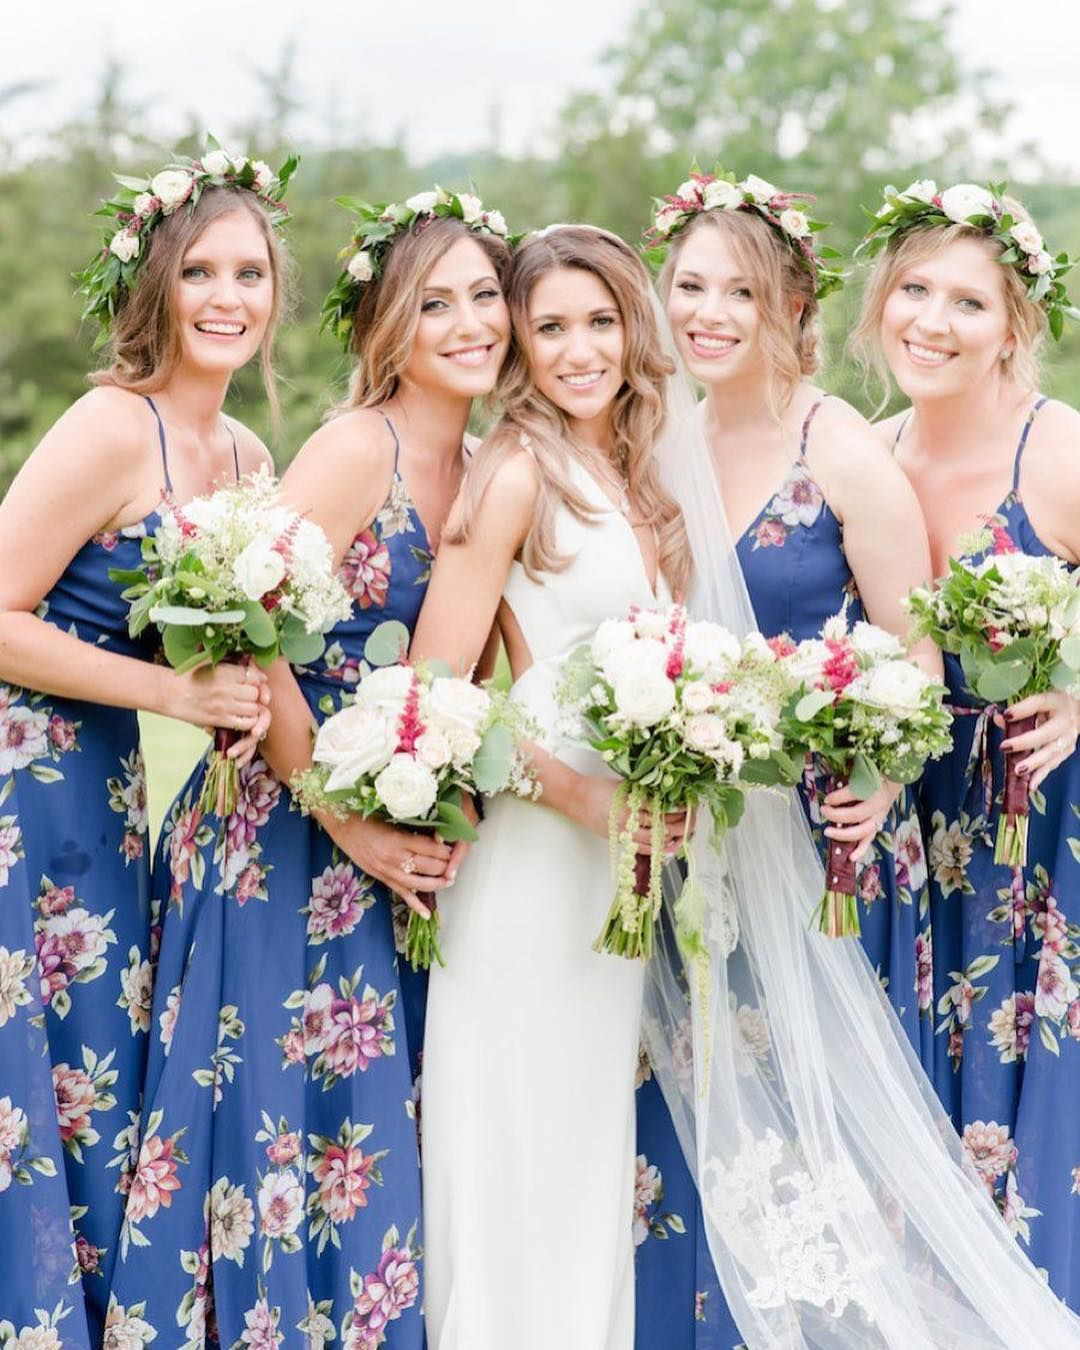 Floral print wedding dresses  Pretty in Print Bridesmaid Dresses For Any Wedding Style  Printed